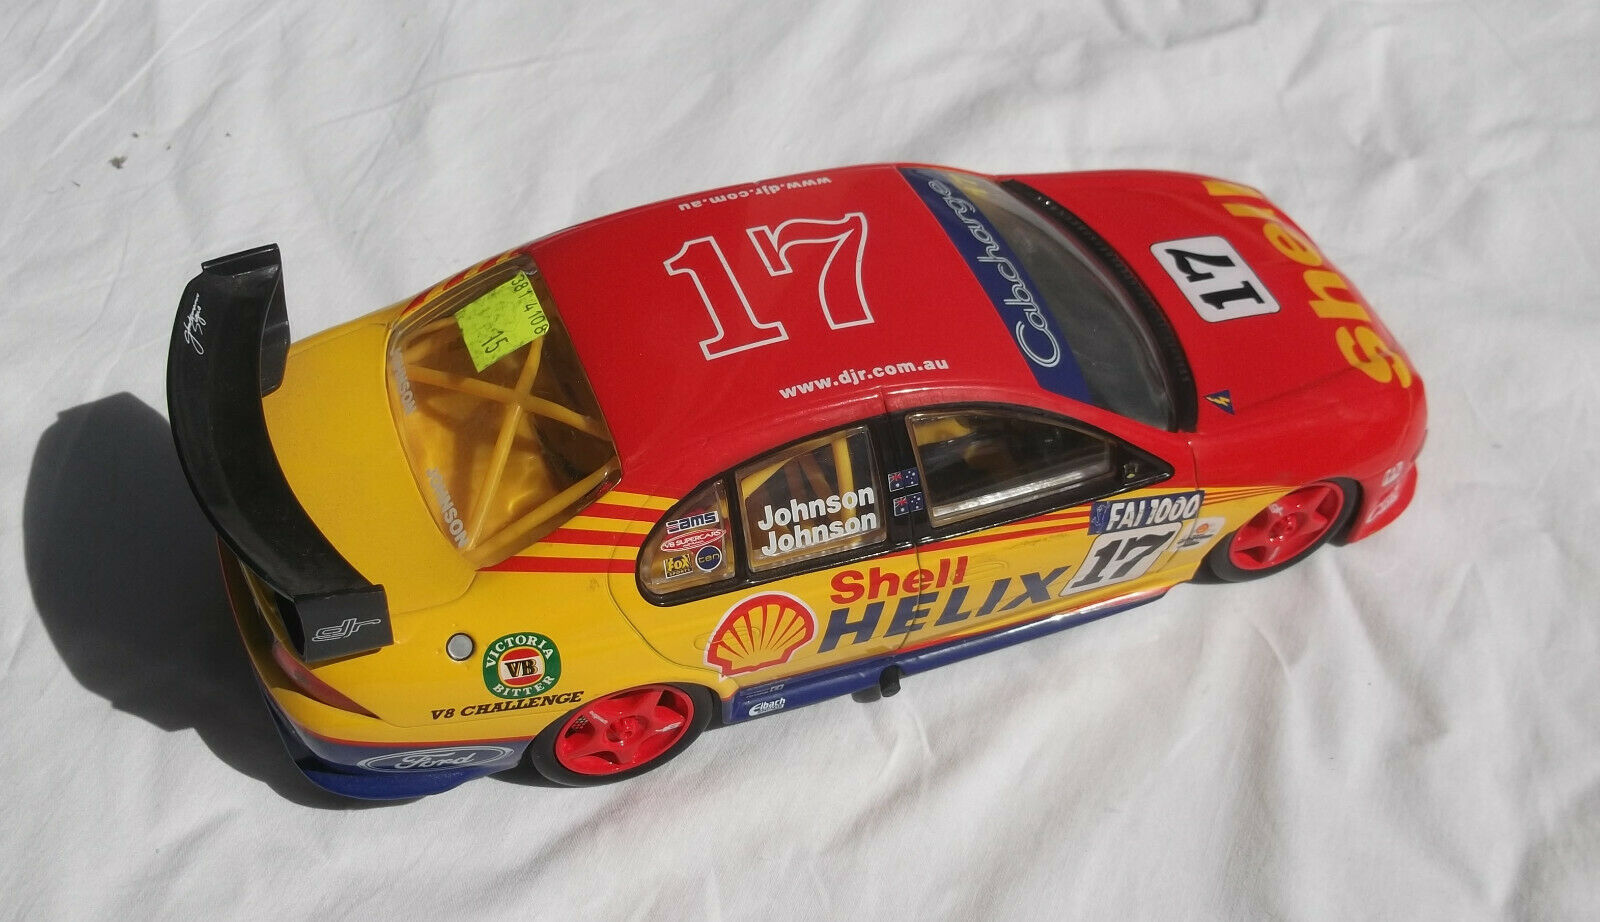 Classic Collectable AU3 Ford Falcon Dick Steven Johnson Shell Helix Racing